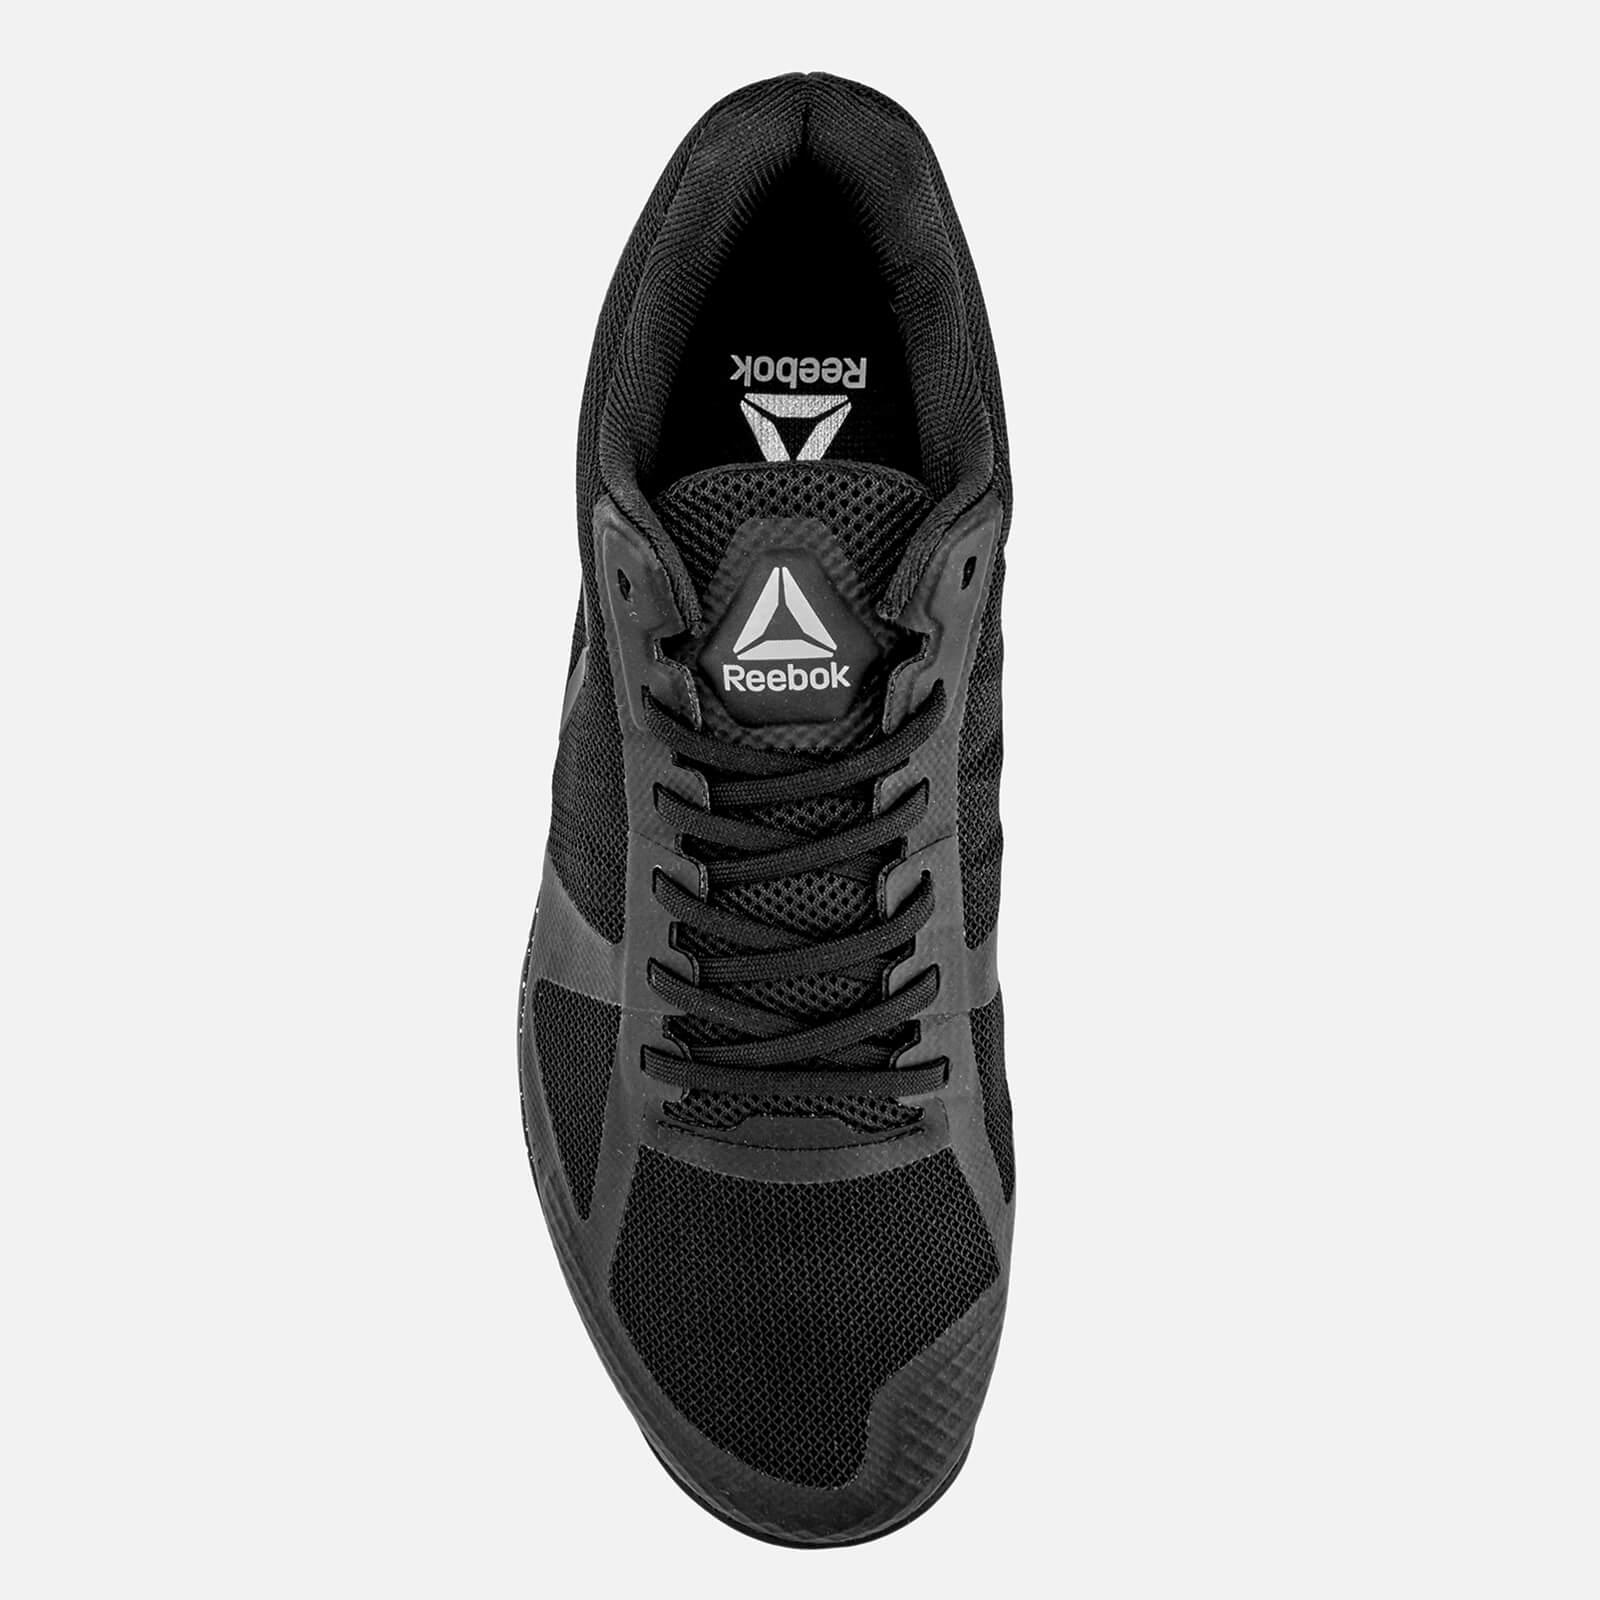 7b829abe42e23 Lyst - Reebok Crossfit Speed Tr 2.0 Trainers in Black for Men